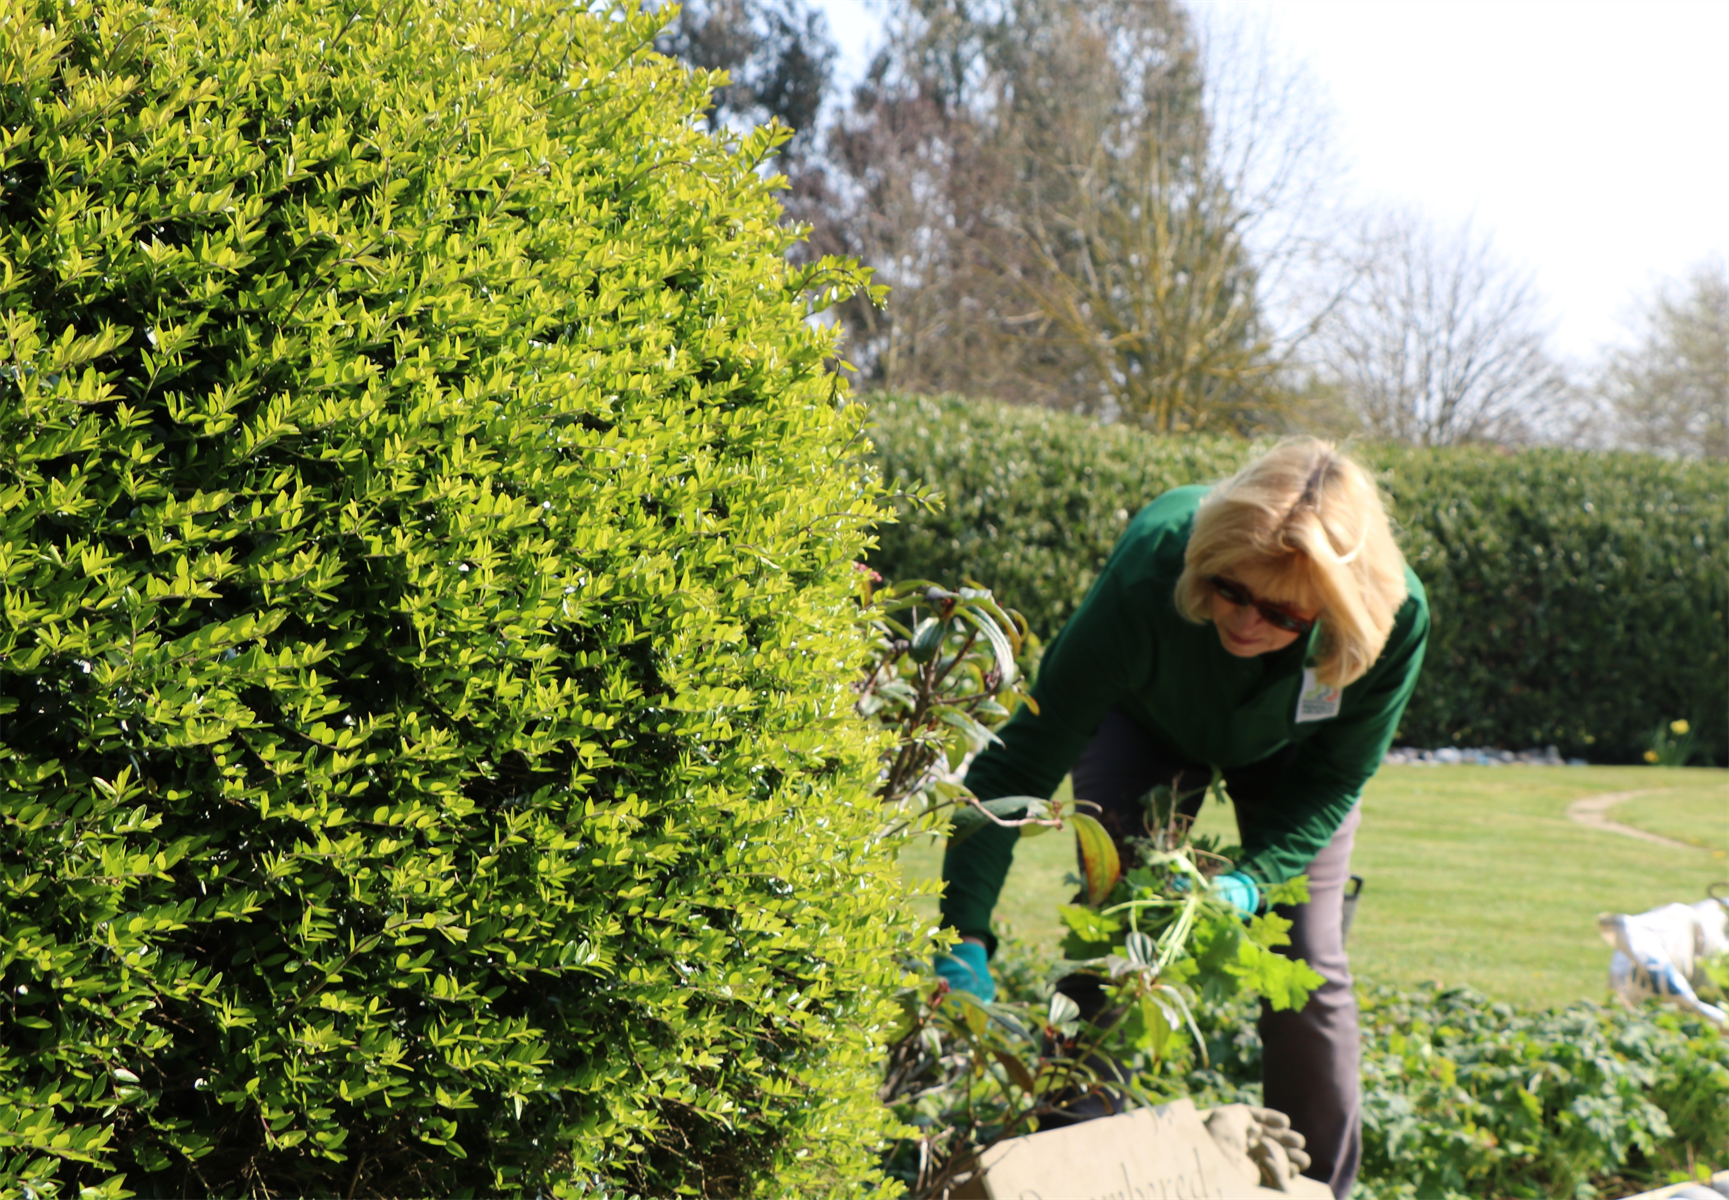 A volunteer working in the grounds.